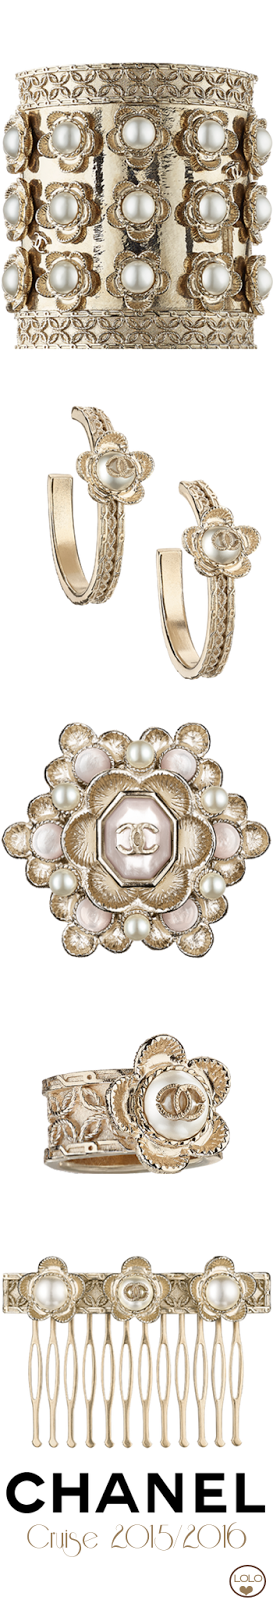 Chanel Cruise 2015/16 Jewelry Collection